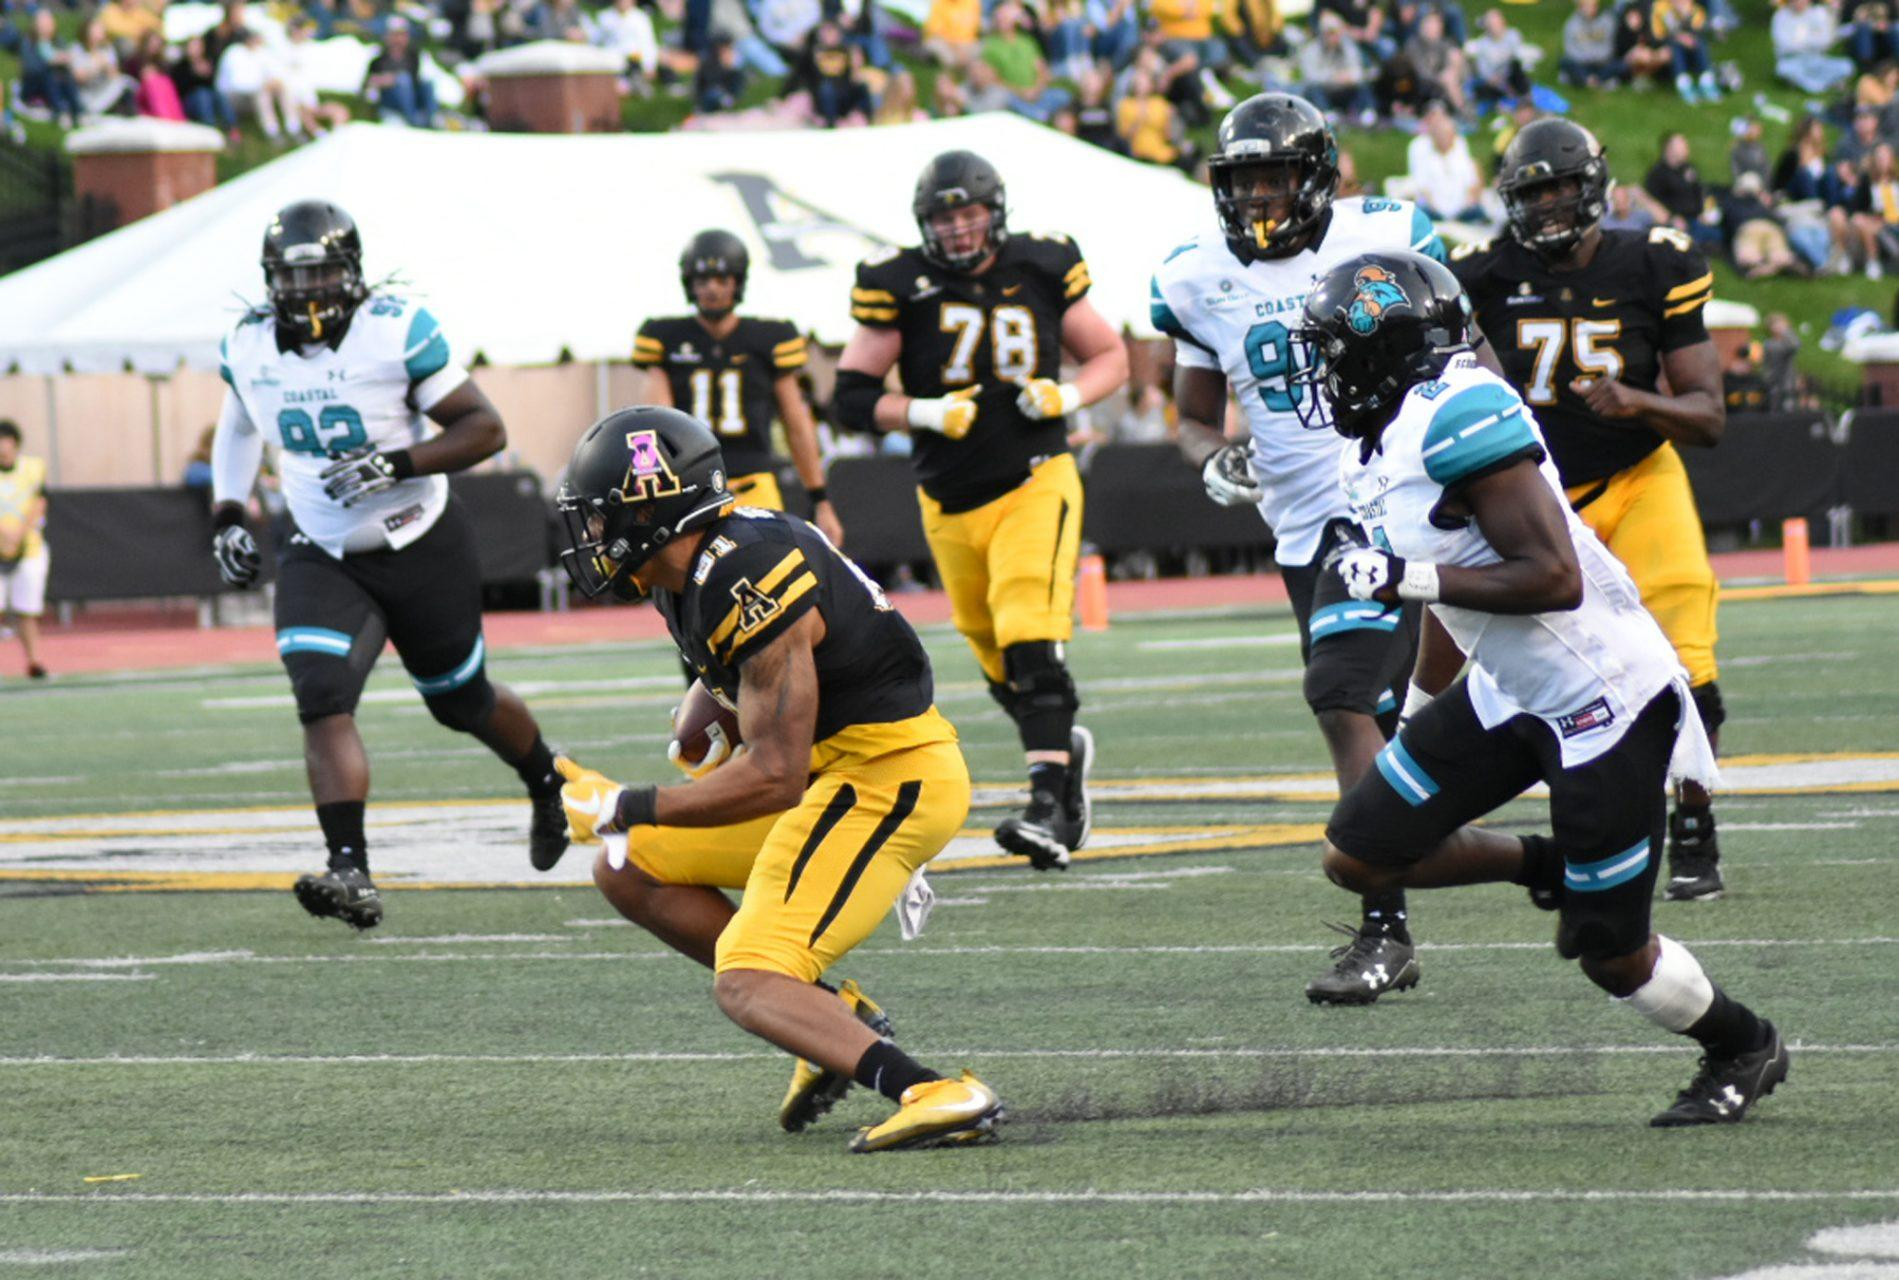 Wide+Receiver+Jalen+Virgil+catching+the+pass+against+the+Chanticleers.+Mountaineers+win+37+to+29.+